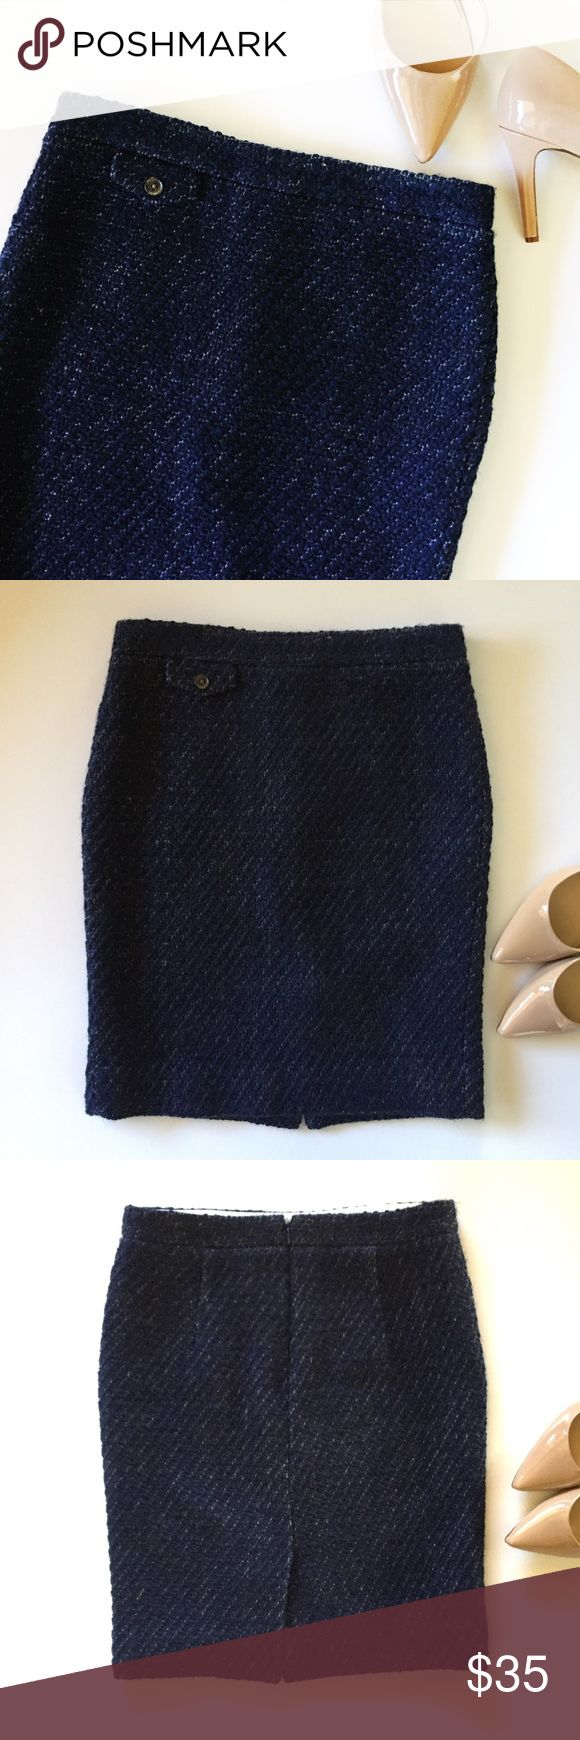 """J. Crew No. 2 navy pencil skirt in textured tweed Gorgeous pencil skirt by J. Crew factory in a navy blue tweed. Back zip, lined. Measures 15"""" across waist and 21"""" long. Great pre-owned condition! Dry clean. J. Crew Skirts Pencil"""